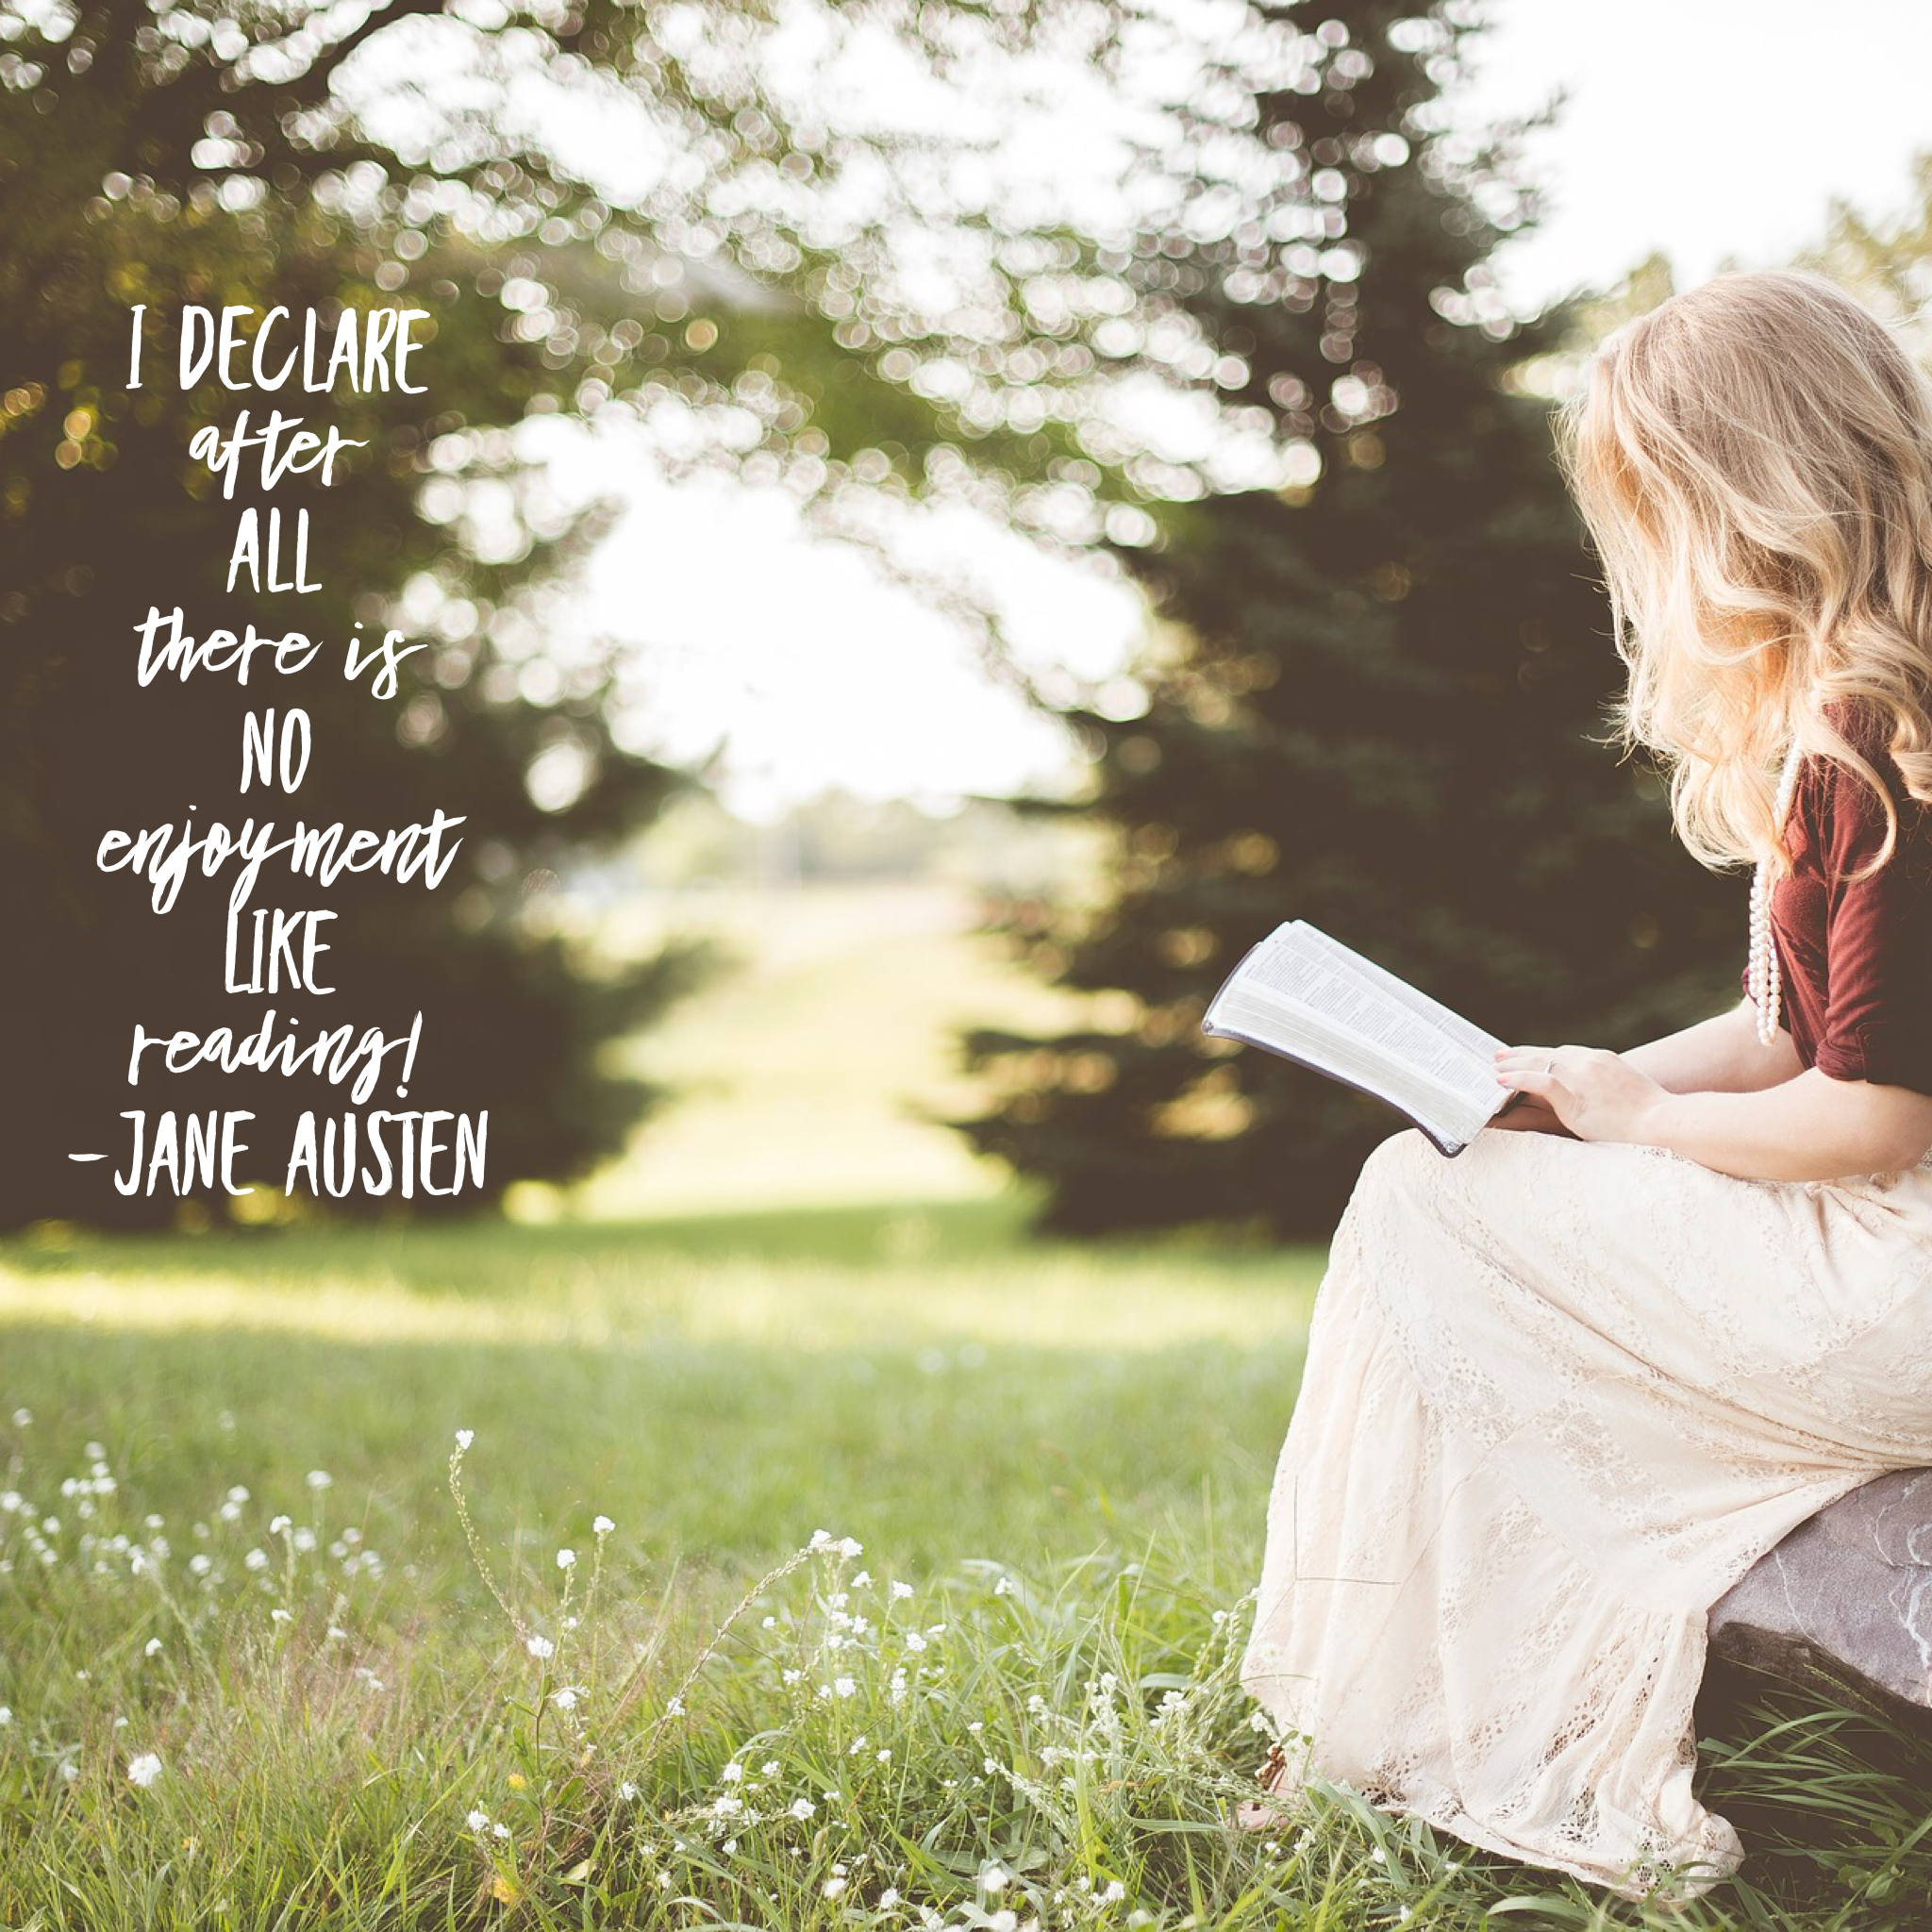 Jane Austen reading quote